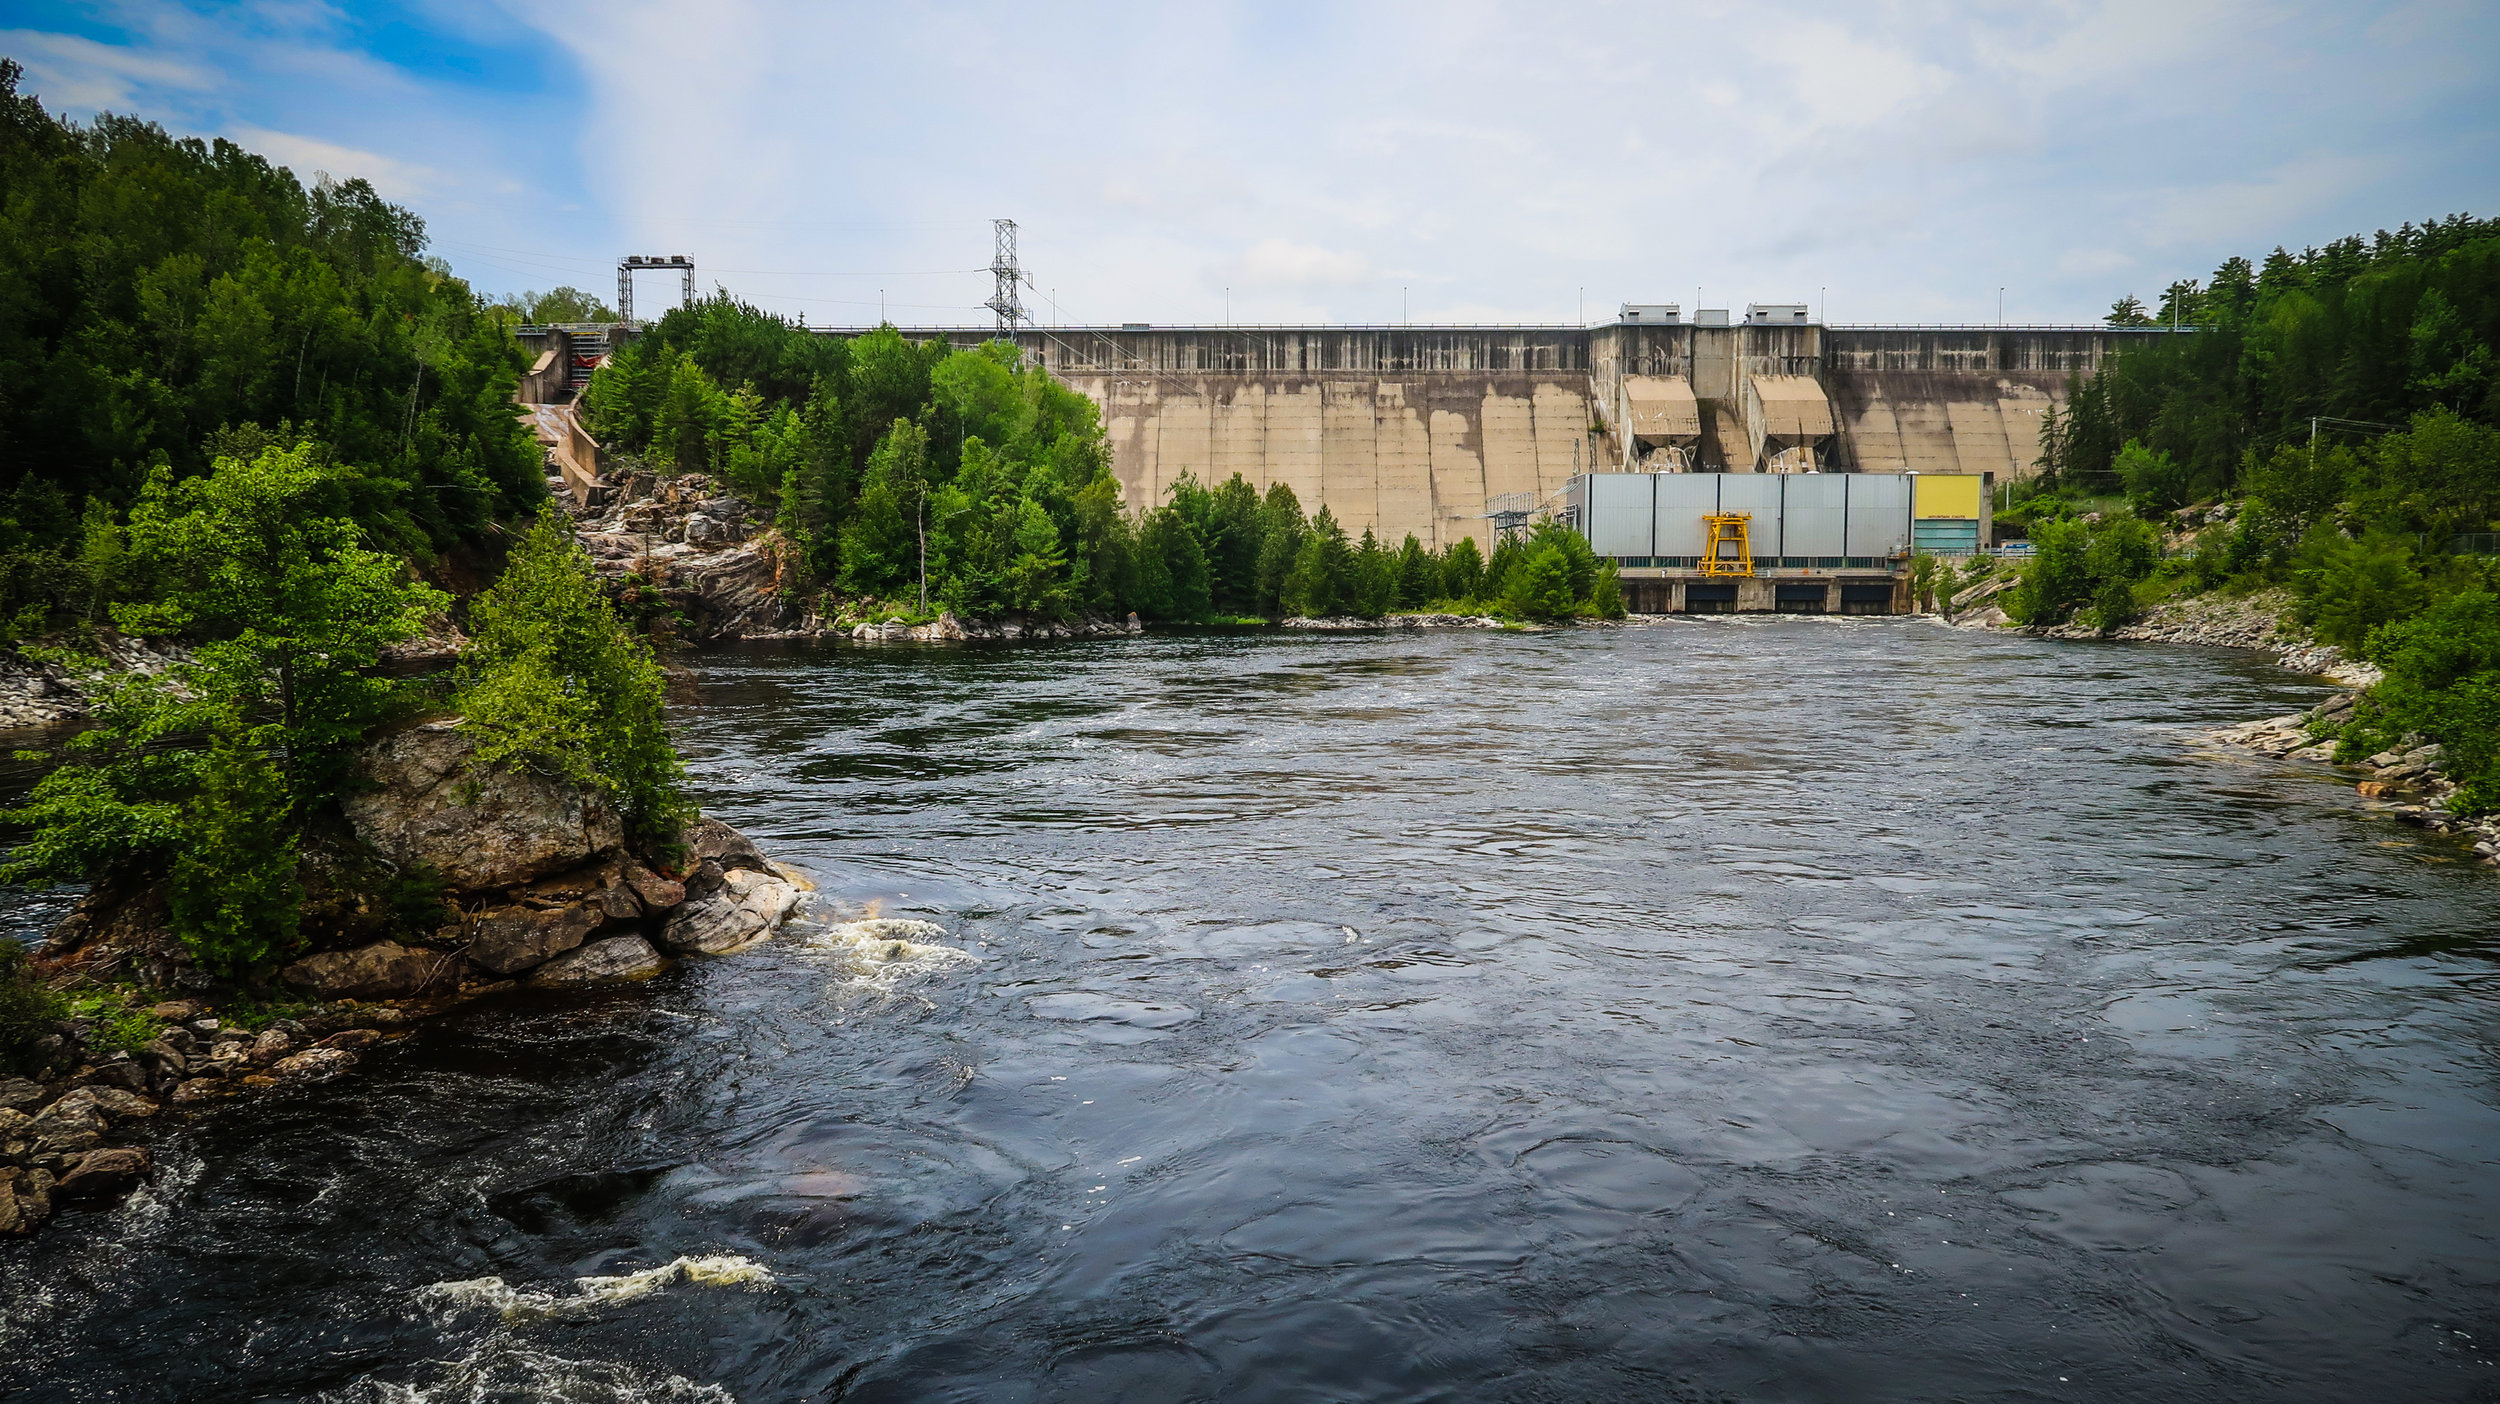 The Mountain Chute Dam is an impressive sight to see after a long bike ride.